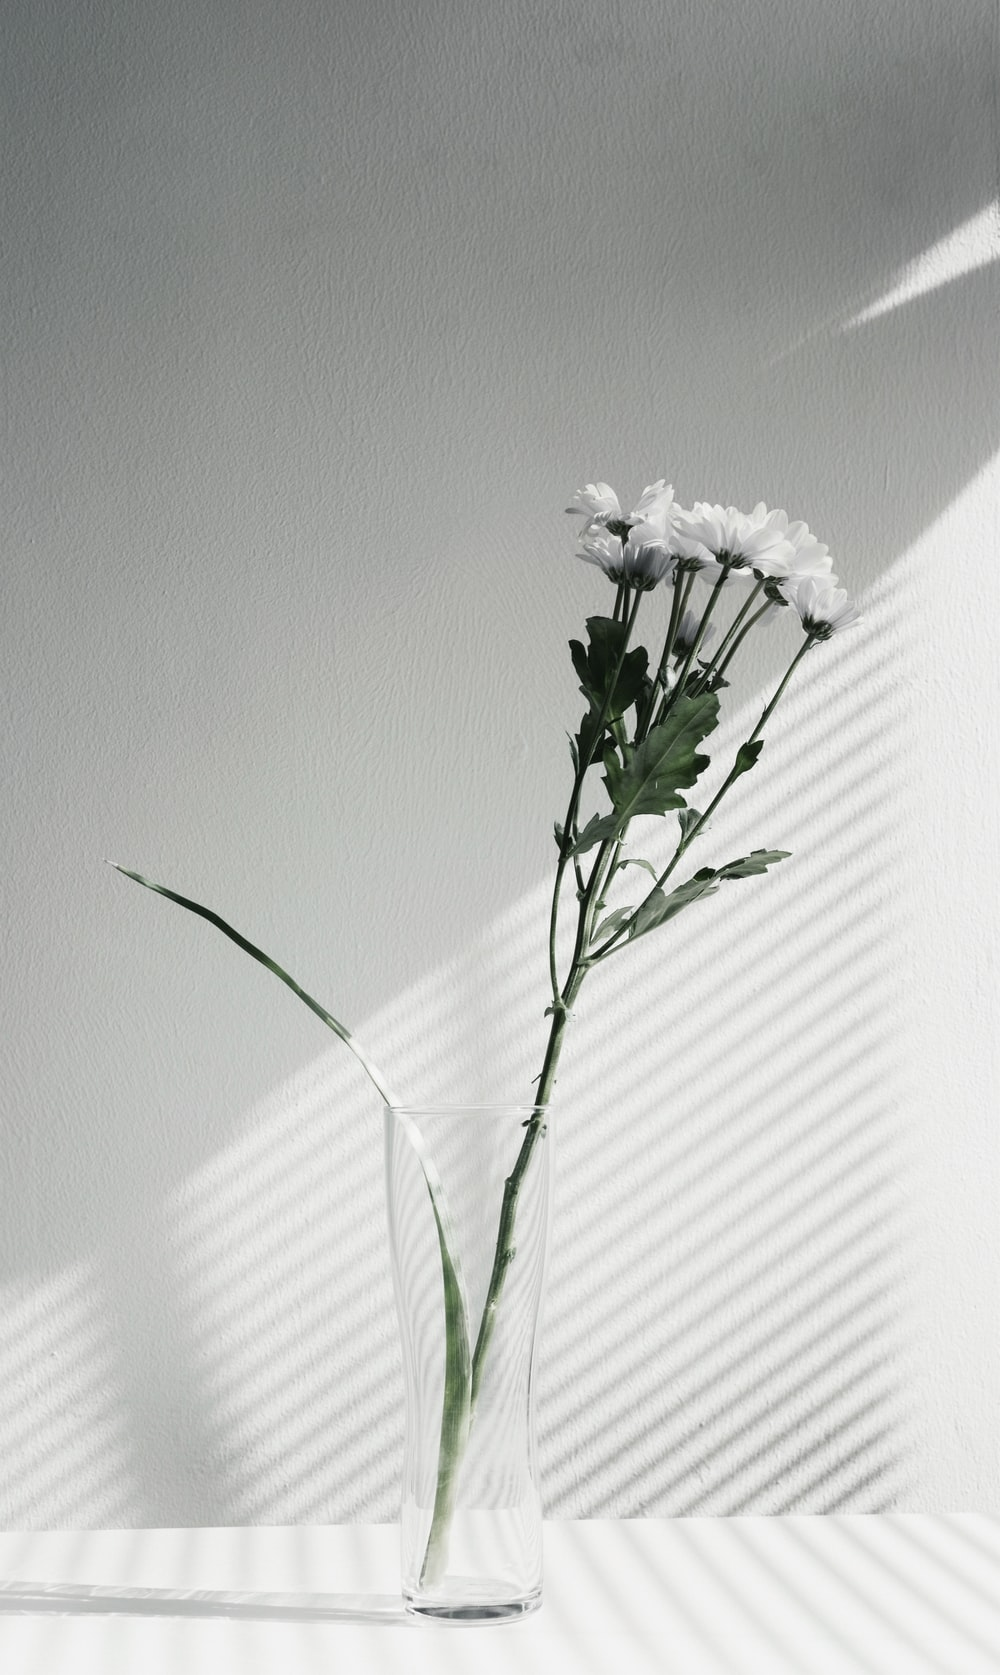 Minimal flower vase photo by imani clovis imaniclovis on unsplash a desaturated shot of white flowers in a glass vase mightylinksfo